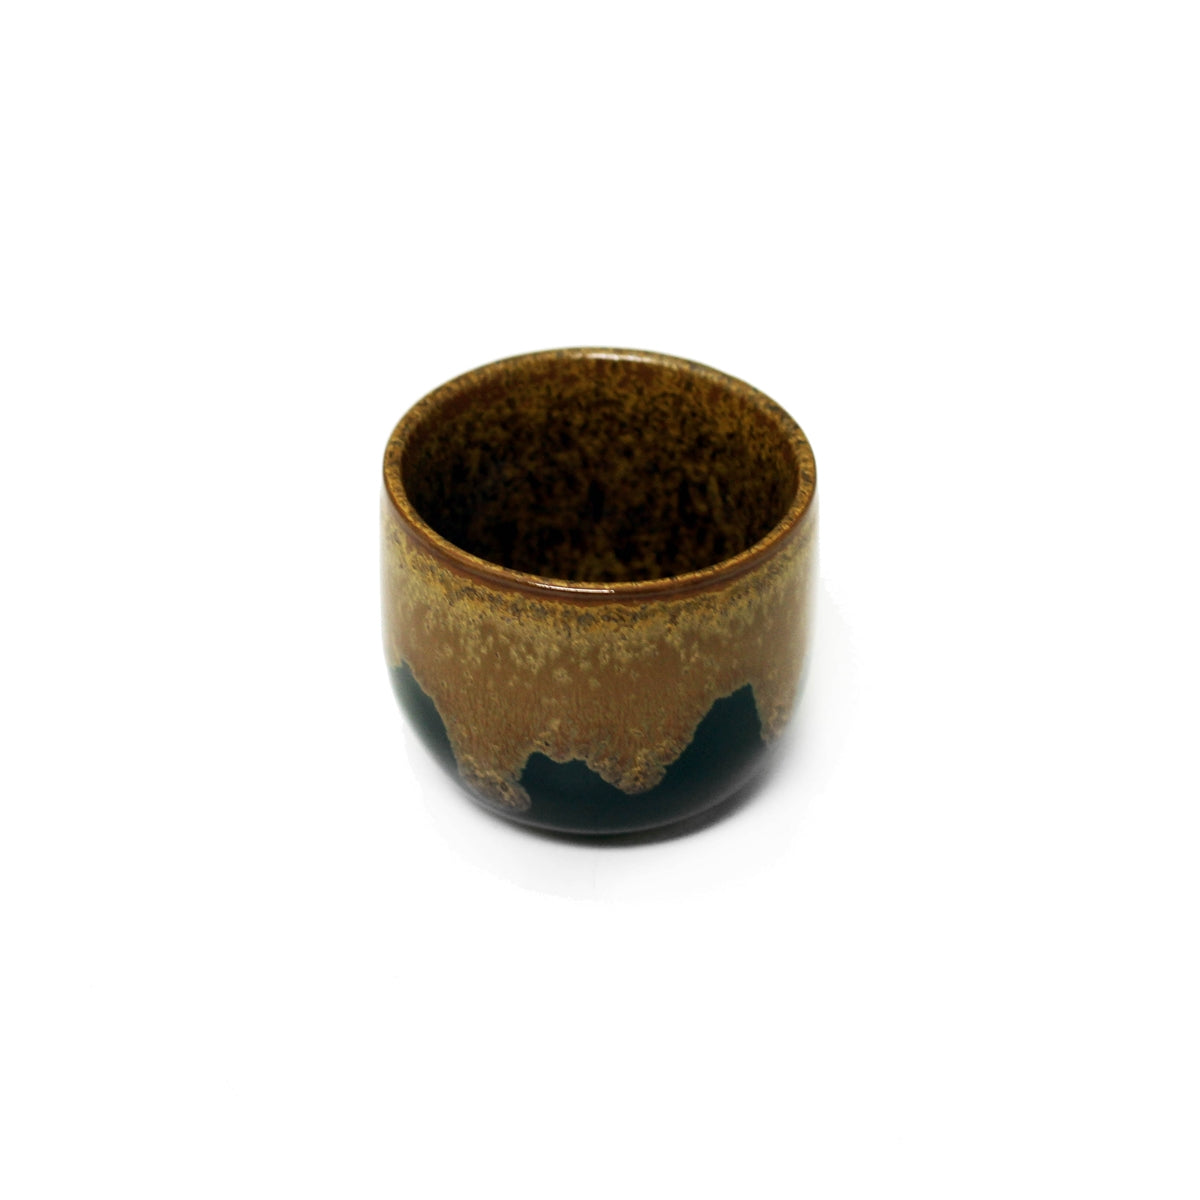 Brown & Black Ceramic Sake Cup 1.5 fl oz